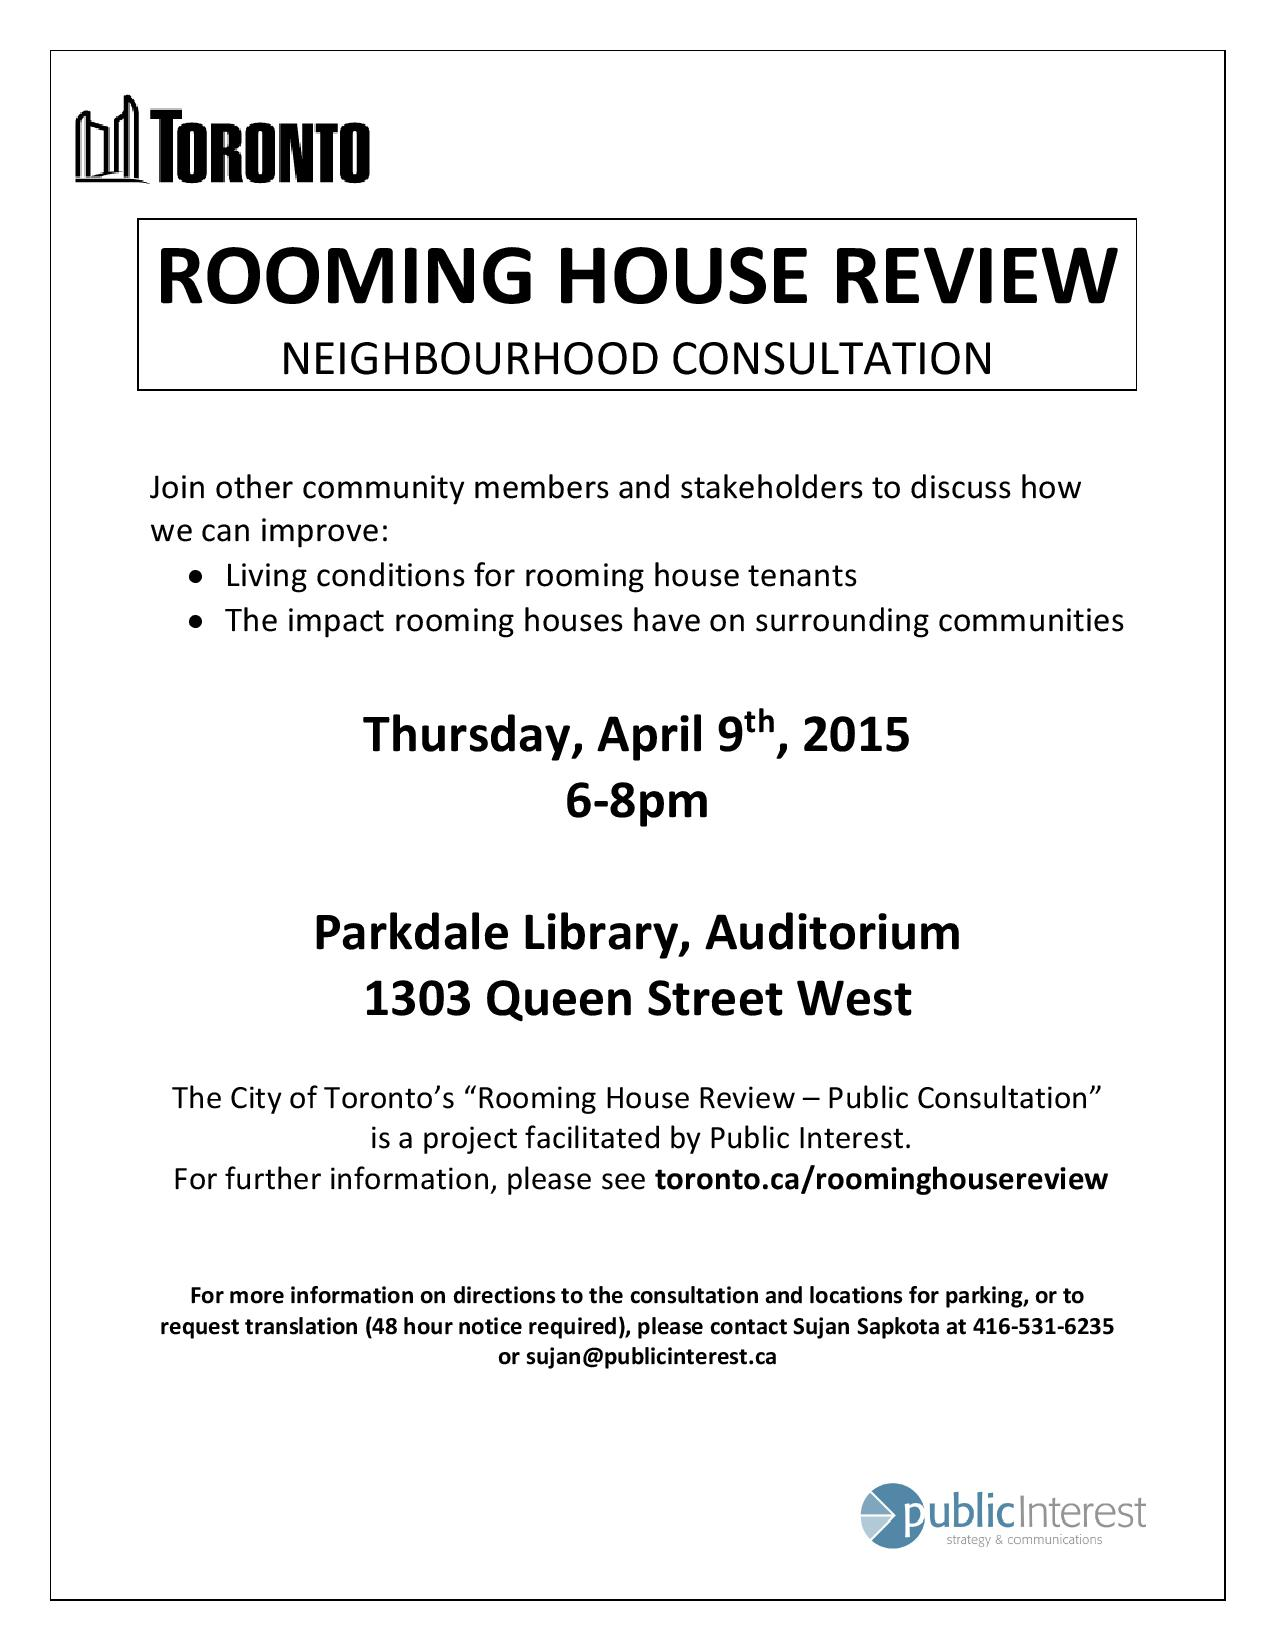 RoomingHouseConsultation_Parkdale-page-001